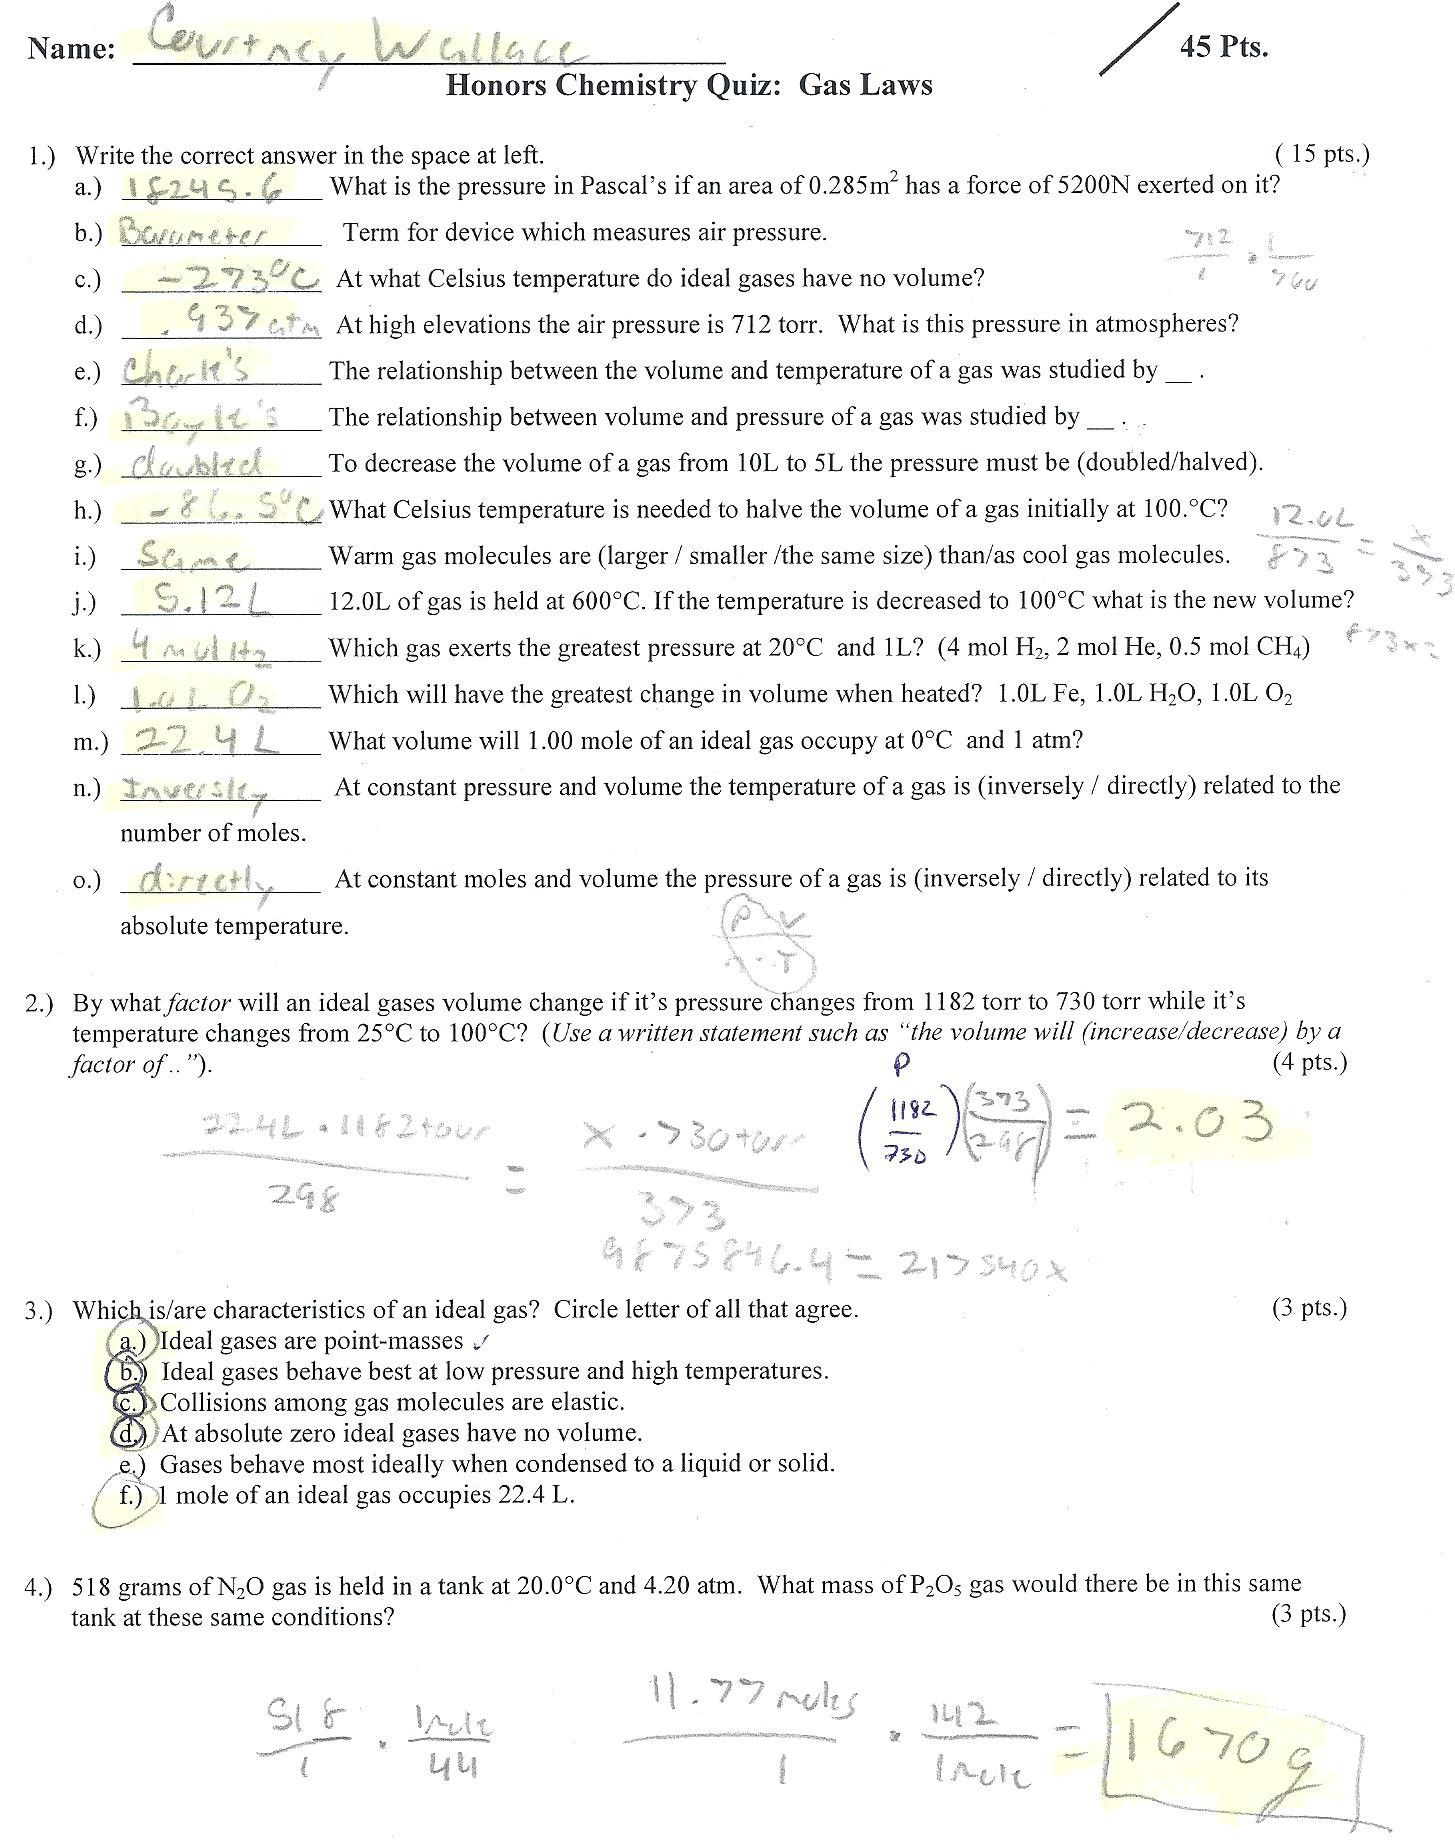 Boyle039s Law Worksheet Answer Key In 2020 Math Fractions Worksheets Gas Laws Chemistry 2nd Grade Math Worksheets